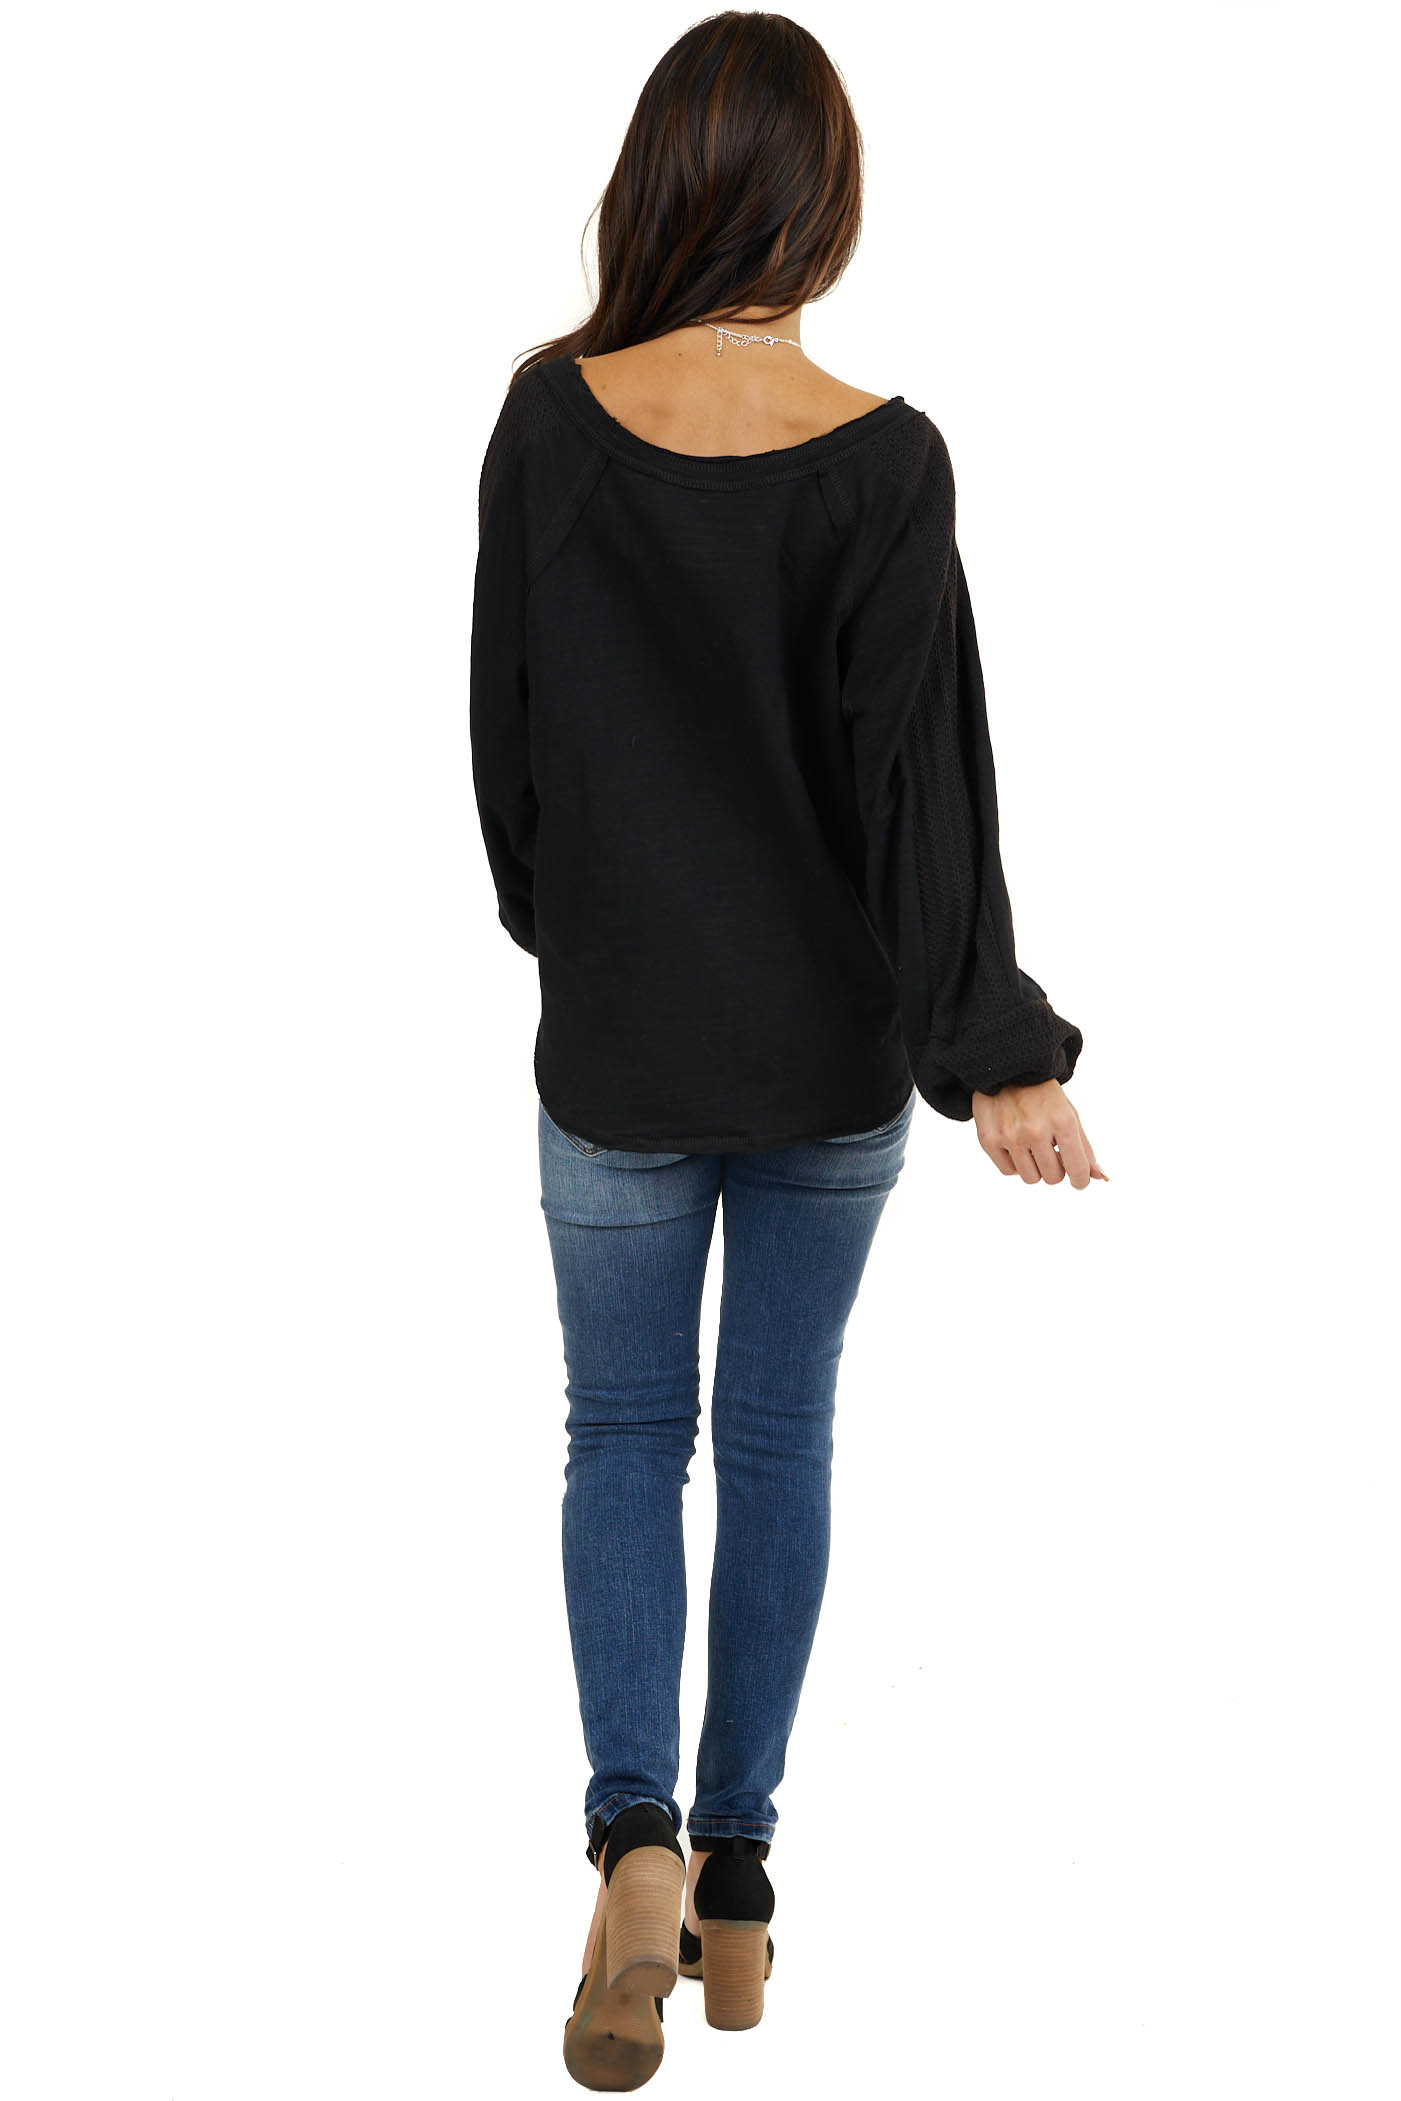 Heathered Black Knit Top with Contrast Knit Bubble Sleeves